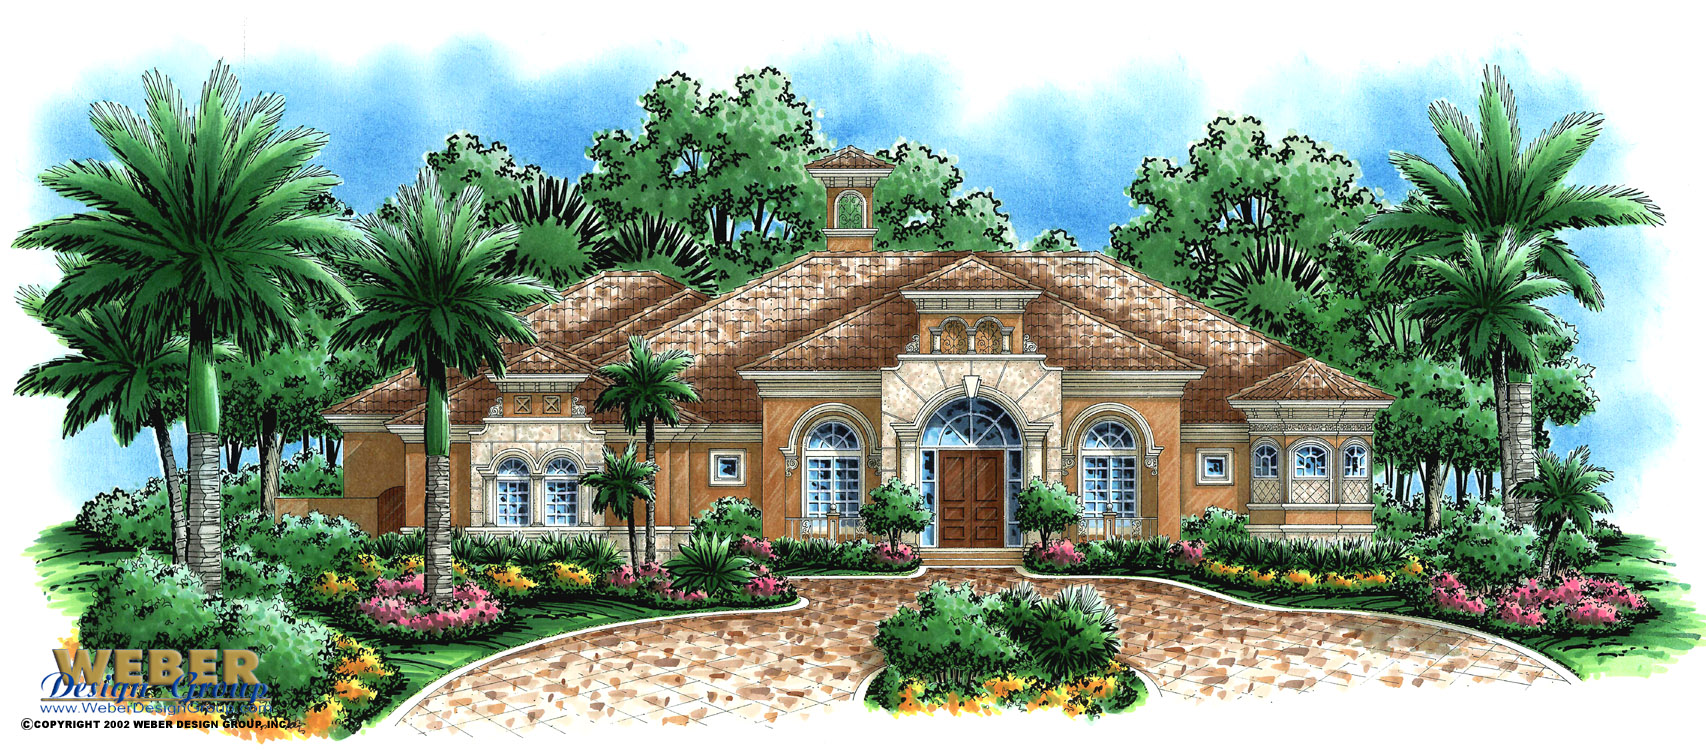 Mediterranean House Plan: Waterfront Golf Course Home Floor Plan on living room home plans, v-shaped home plans, mediterranean landscaping plans, trailer home plans, luxury home plans, french chateau architecture home plans, spanish mediterranean home plans, sears home plans, three story home plans, mediterranean garden plans, 5 bed home plans, single story mediterranean home plans, 28 x 40 home plans, survival home plans, one-bedroom cottage home plans, handicap home plans, multi family home plans, pool home plans, mediterranean sater home plans, warehouse home plans,